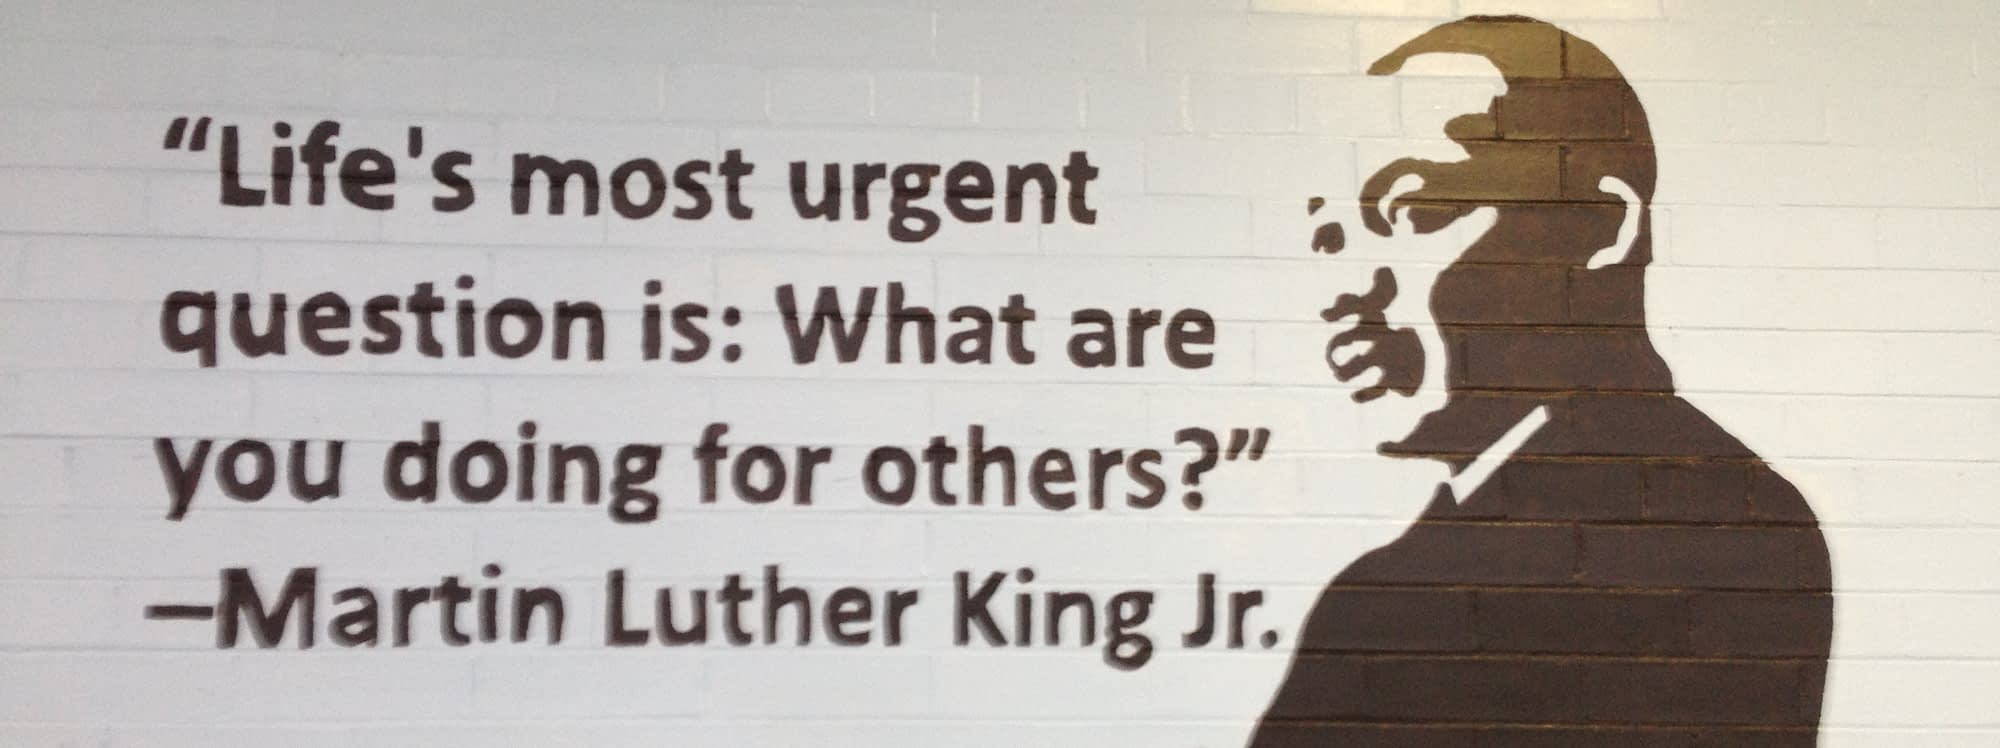 Marther luther quote service